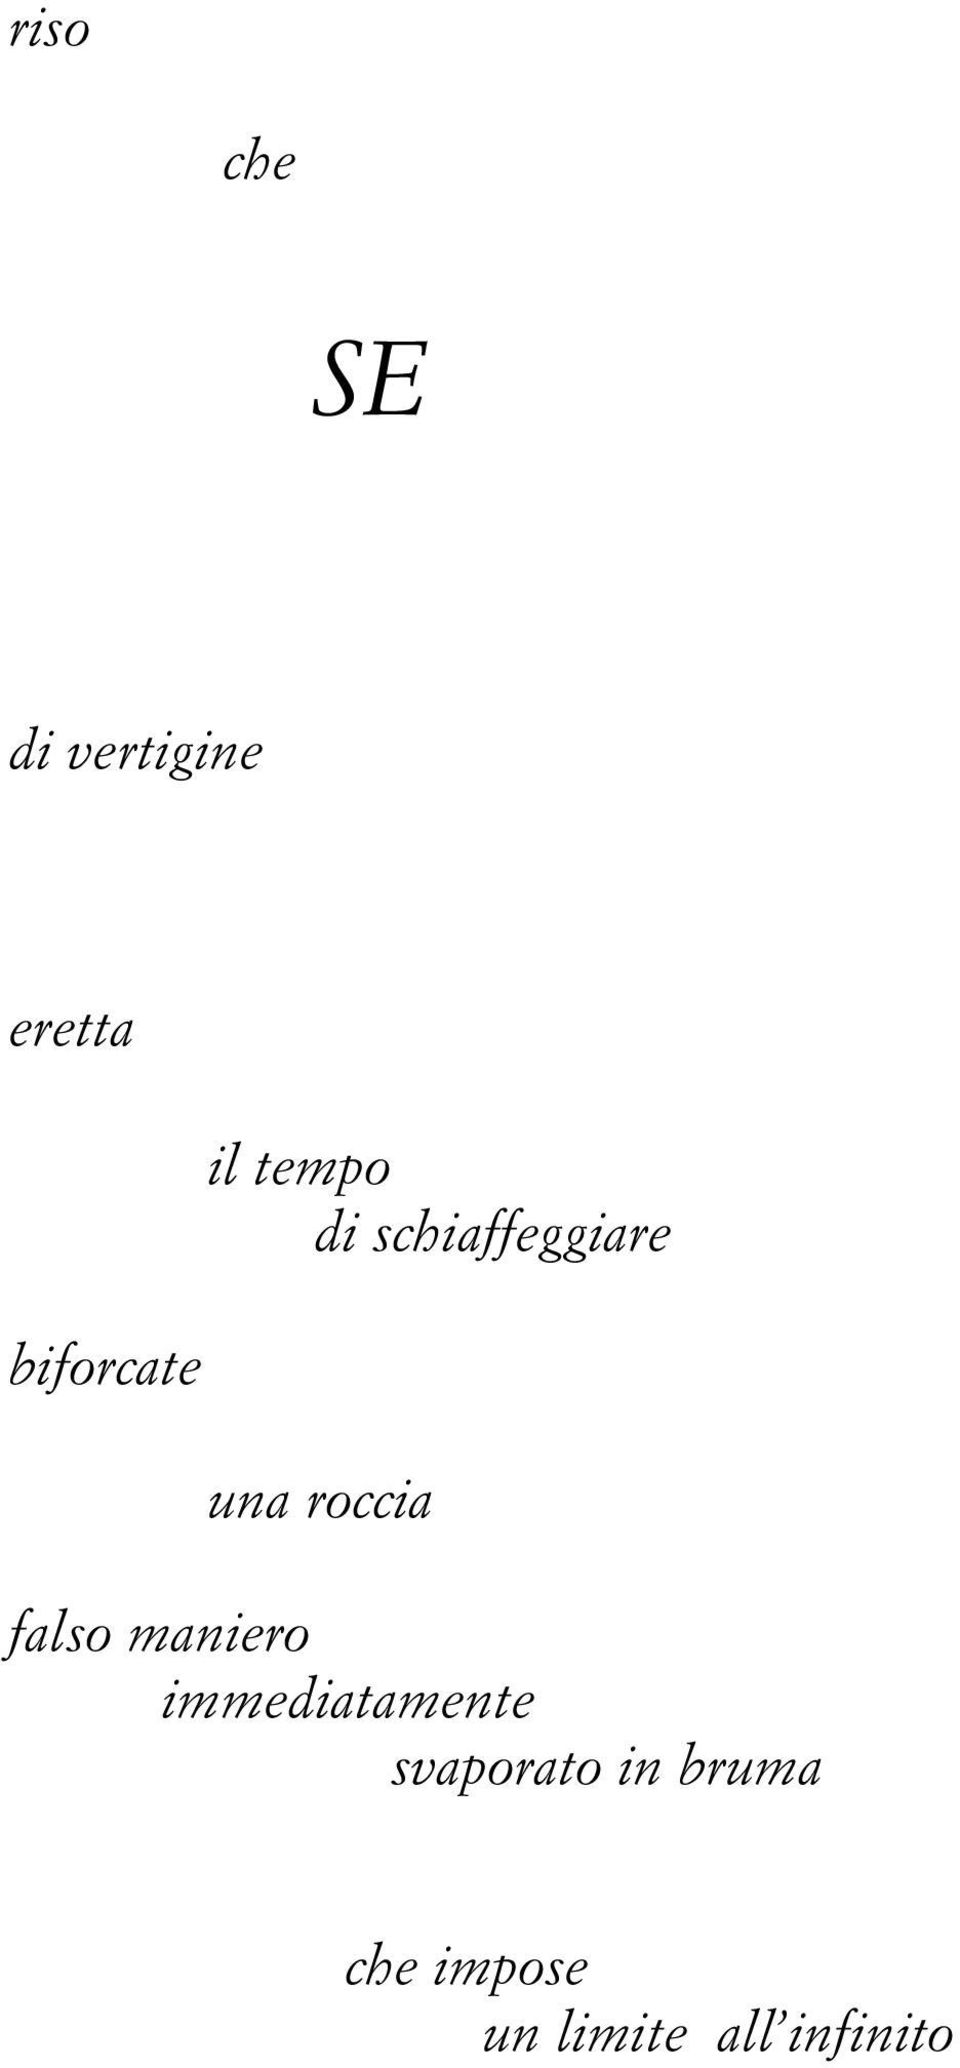 roccia falso maniero immediatamente